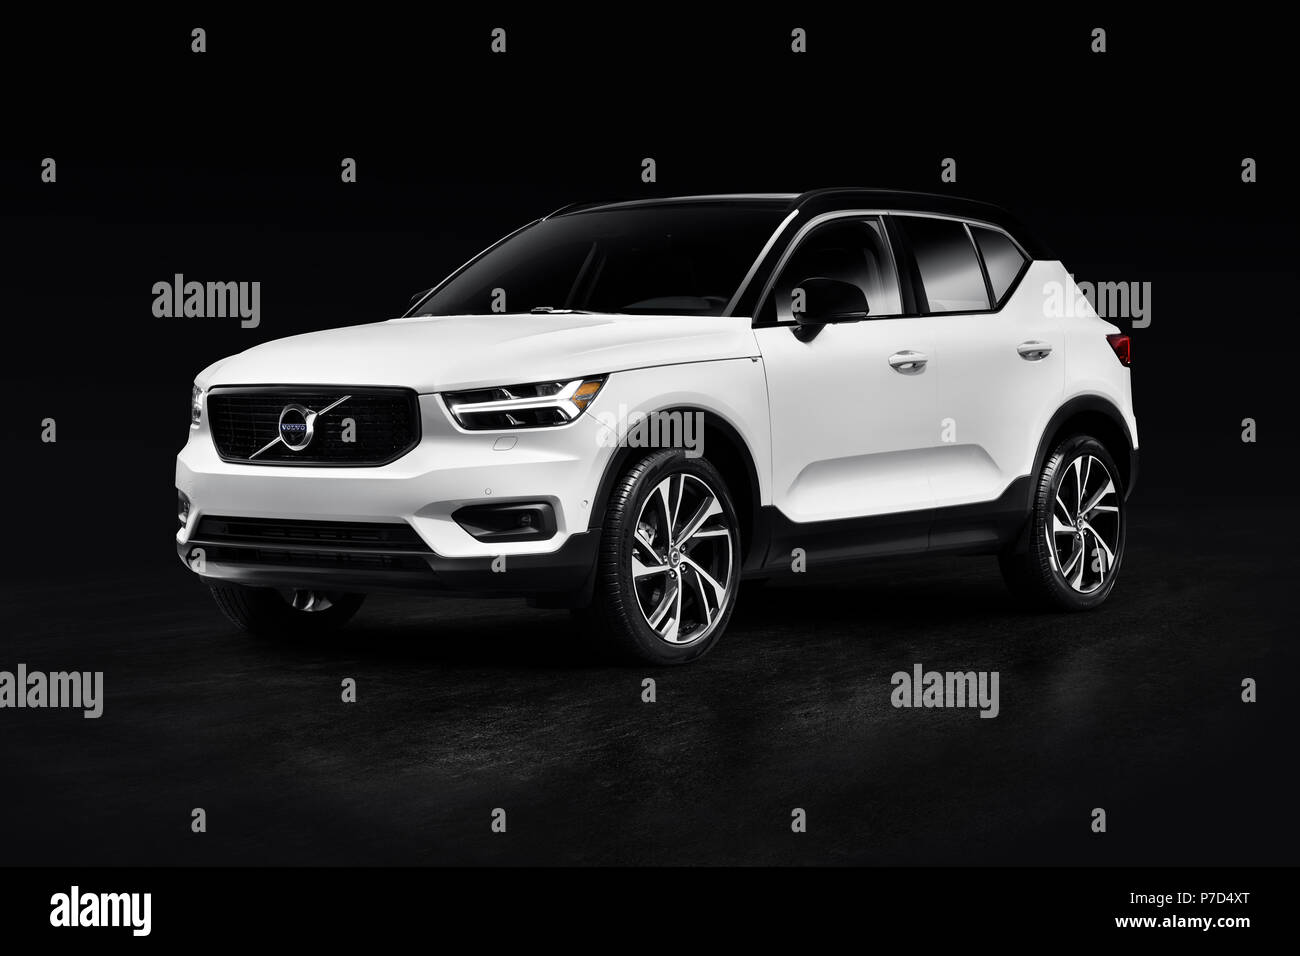 White 2019 Volvo Xc40 T5 Awd R Design Luxury Car Suv Isolated On Black Studio Background With Clipping Path Stock Photo Alamy